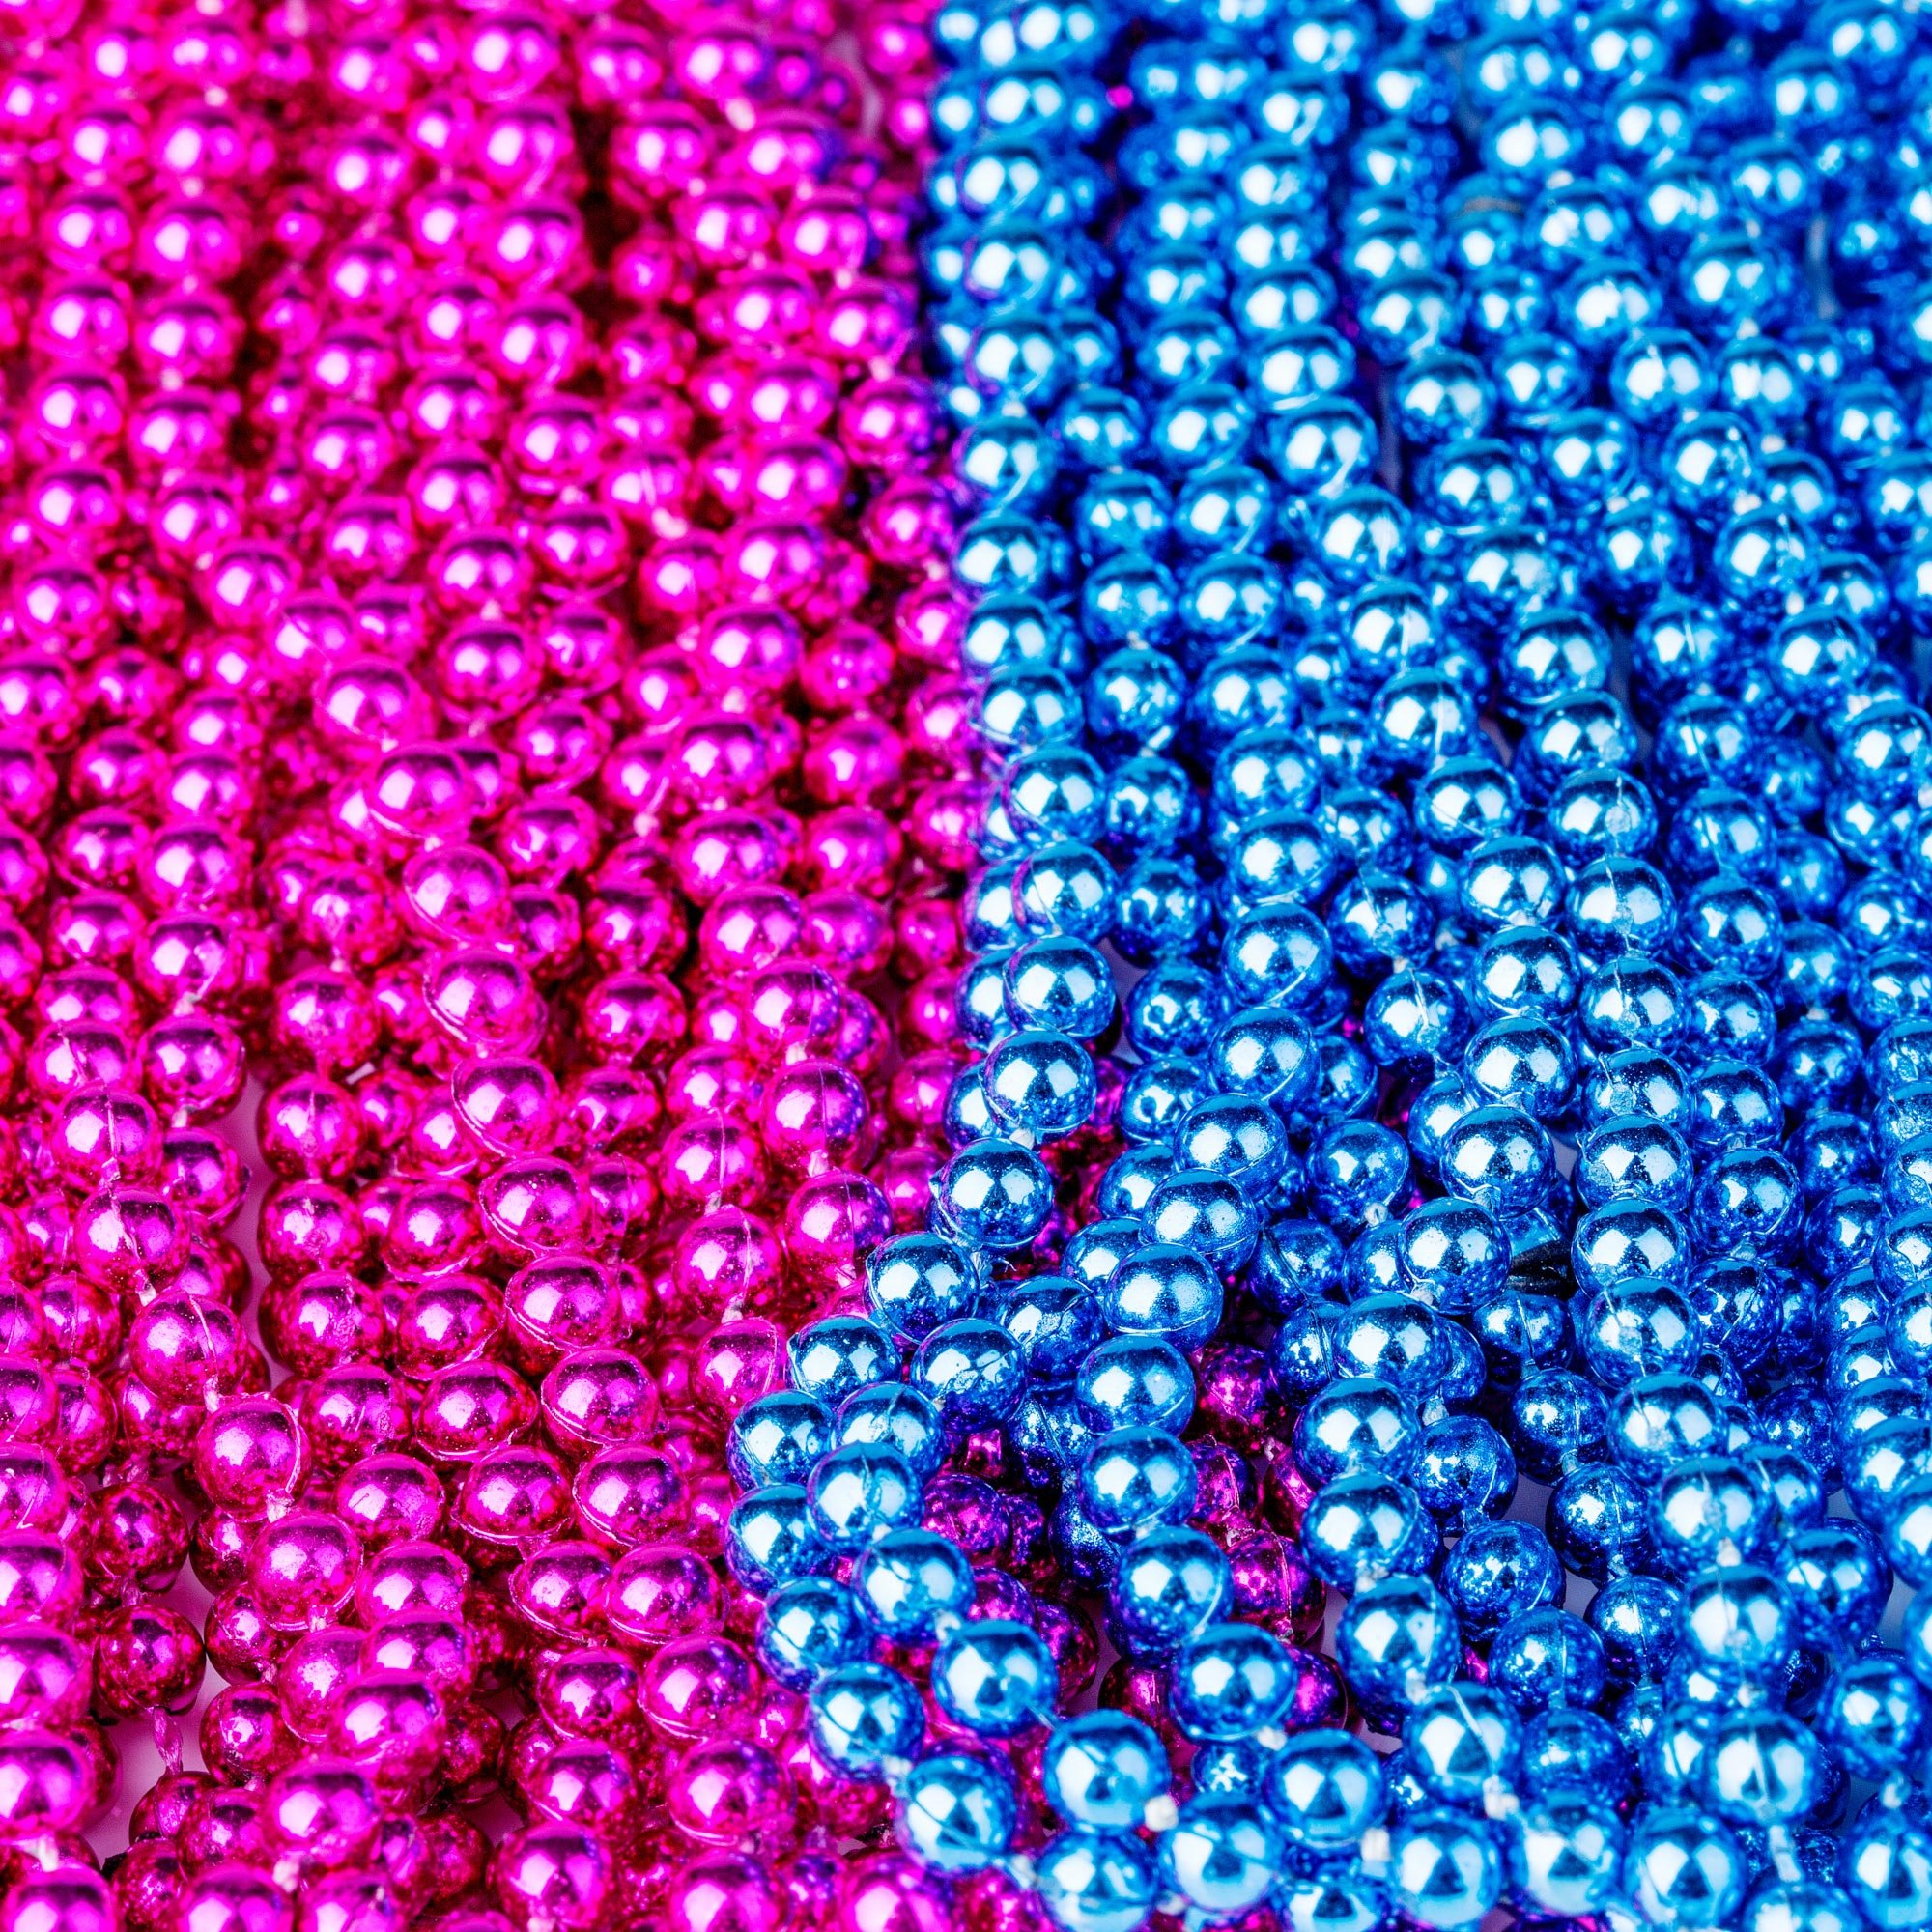 Sepco 30 Inch 4mm Round Baby Gender Reveal Beads Baby Shower Party Supplies Set of 26 Includes Pink and Blue Beads